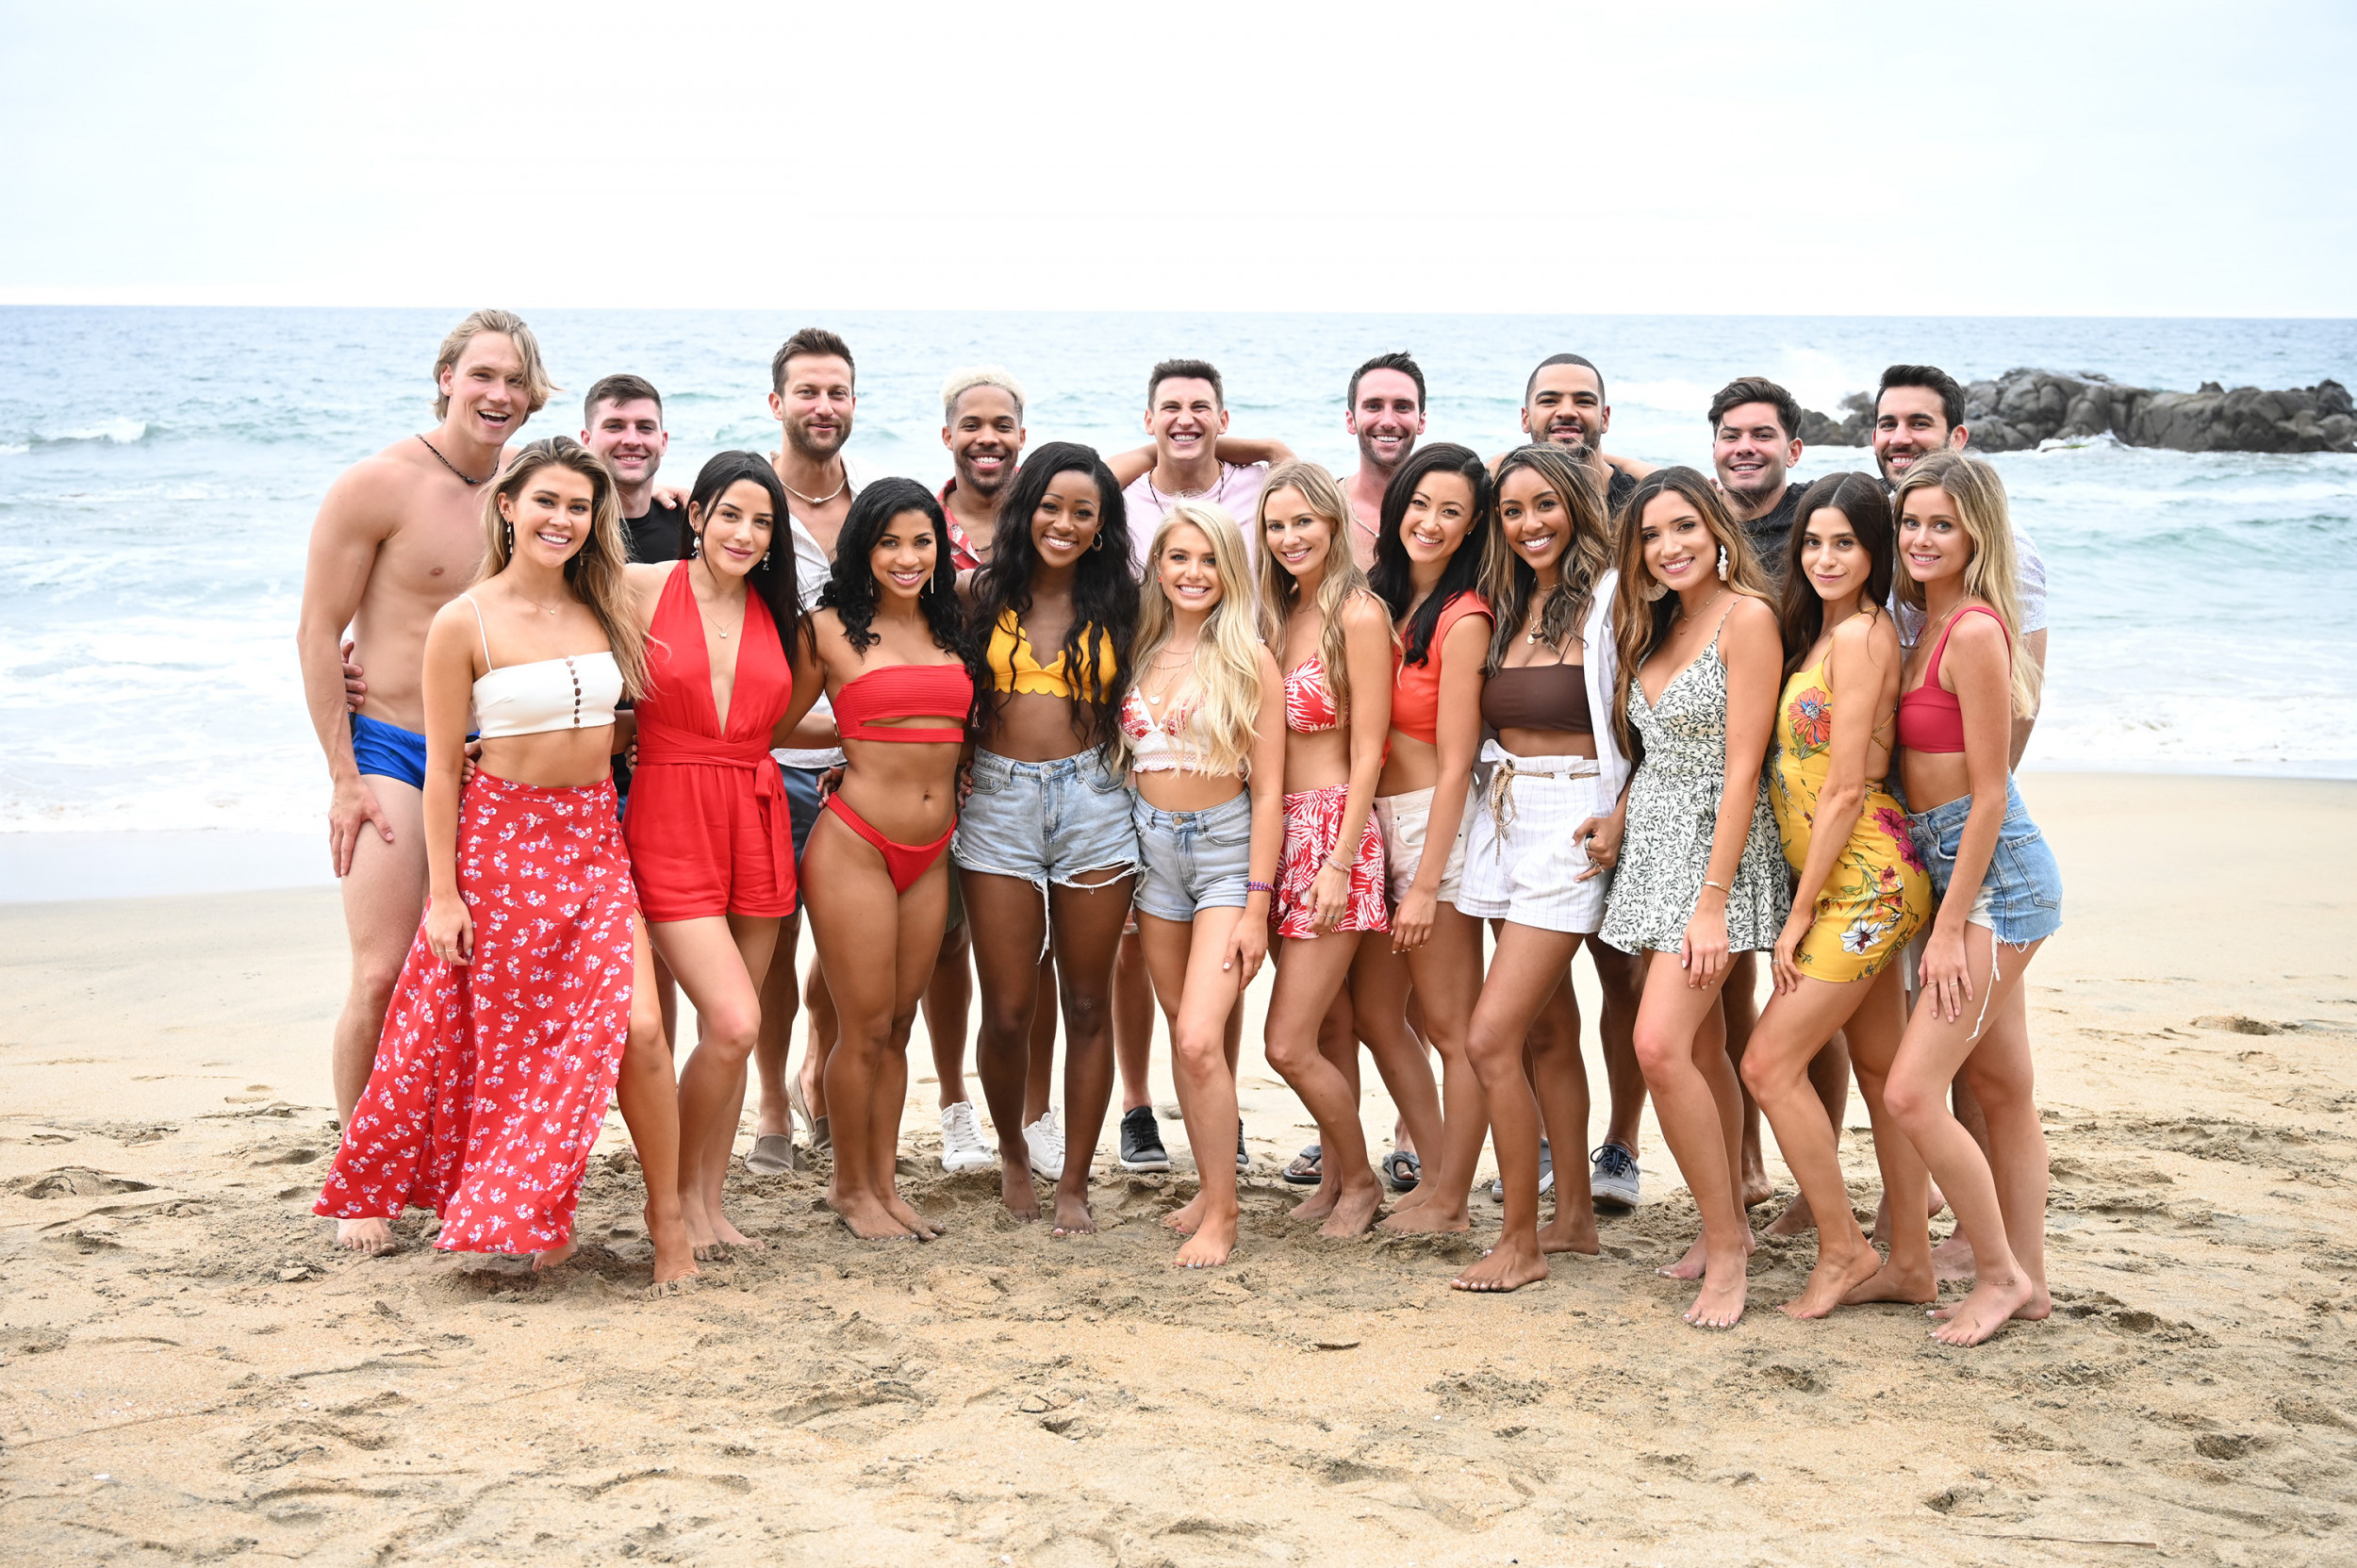 When Is the 'Bachelor In Paradise' Finale? How To Watch The Delayed Season End and Reunion Special